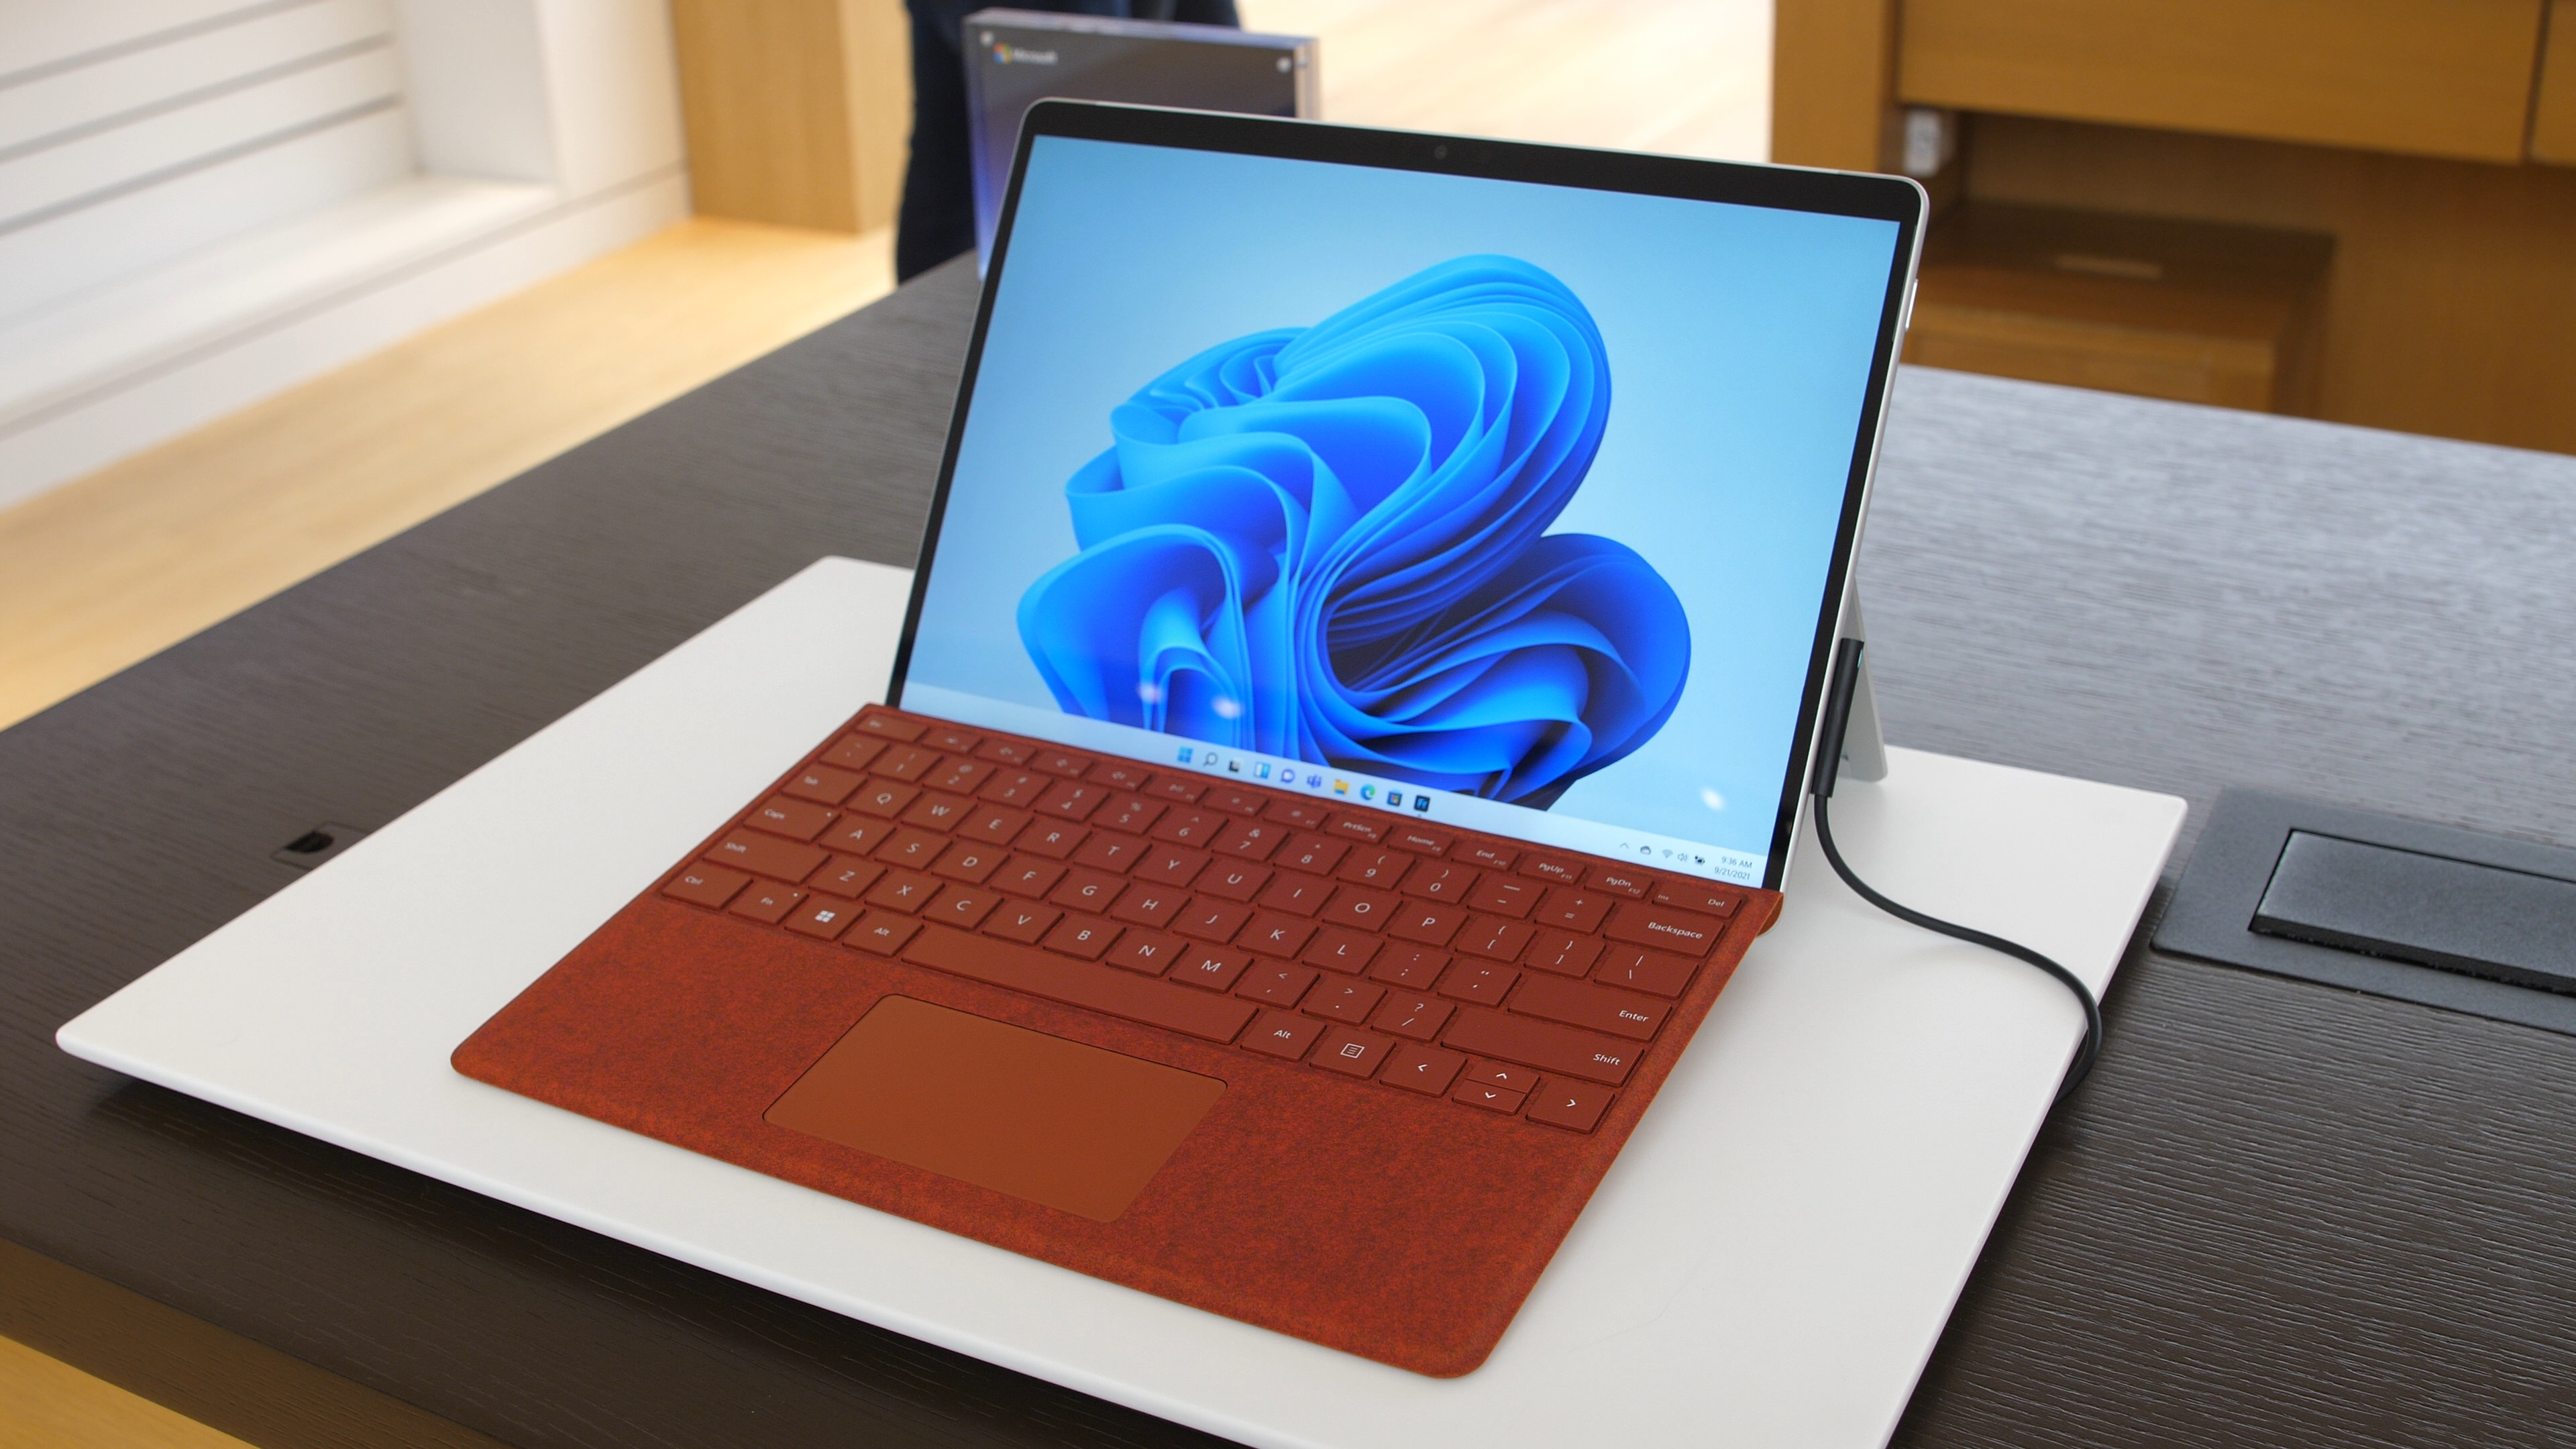 Surface Pro 8 vs. Surface Pro 7: Is Microsoft's new 2-in-1 better than before? - CNET